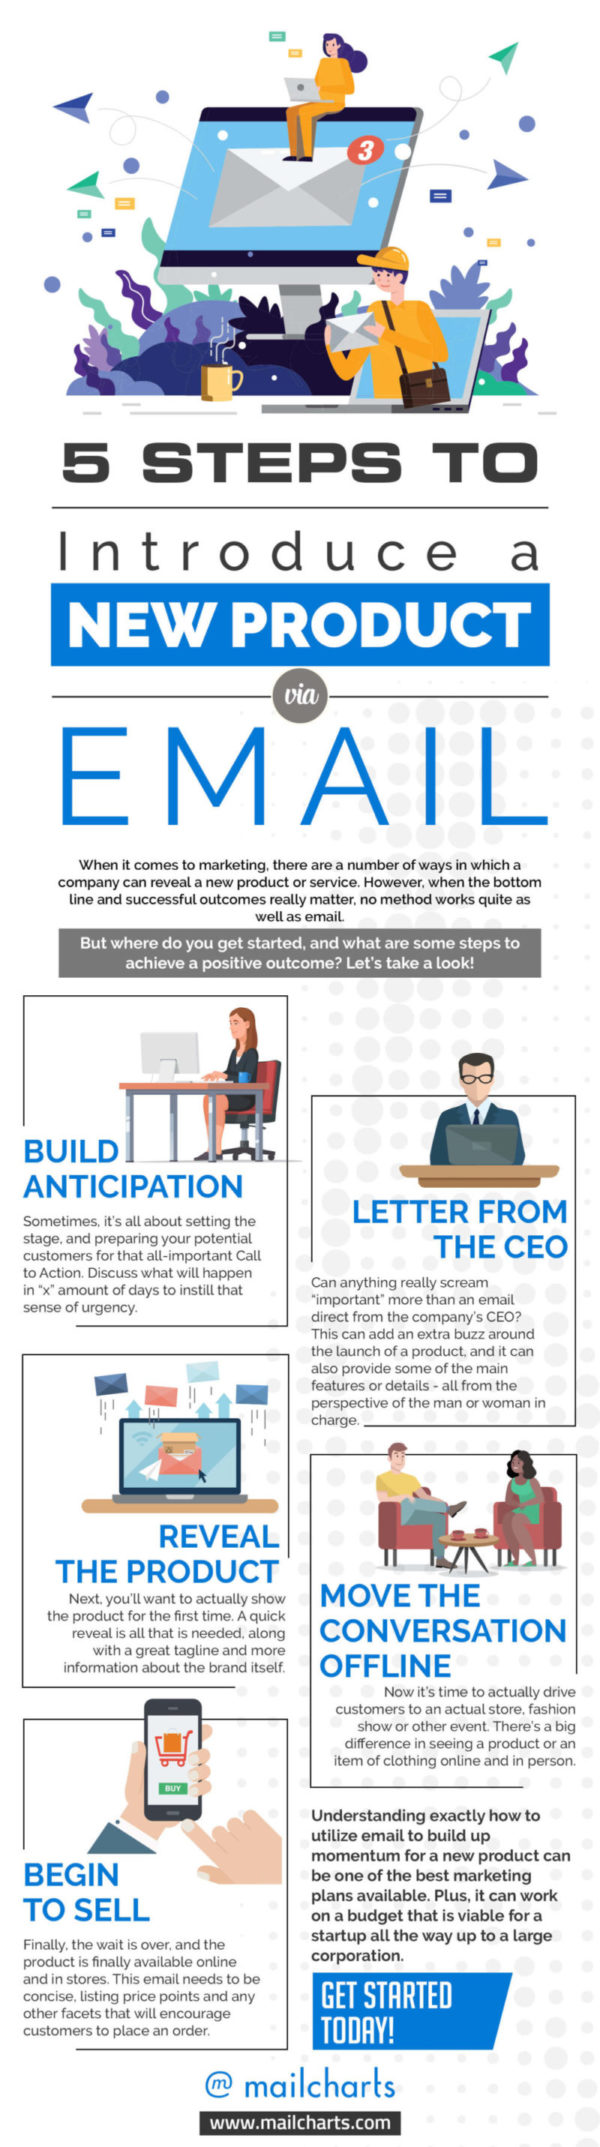 5 Steps to Introduce a New Product Via Email